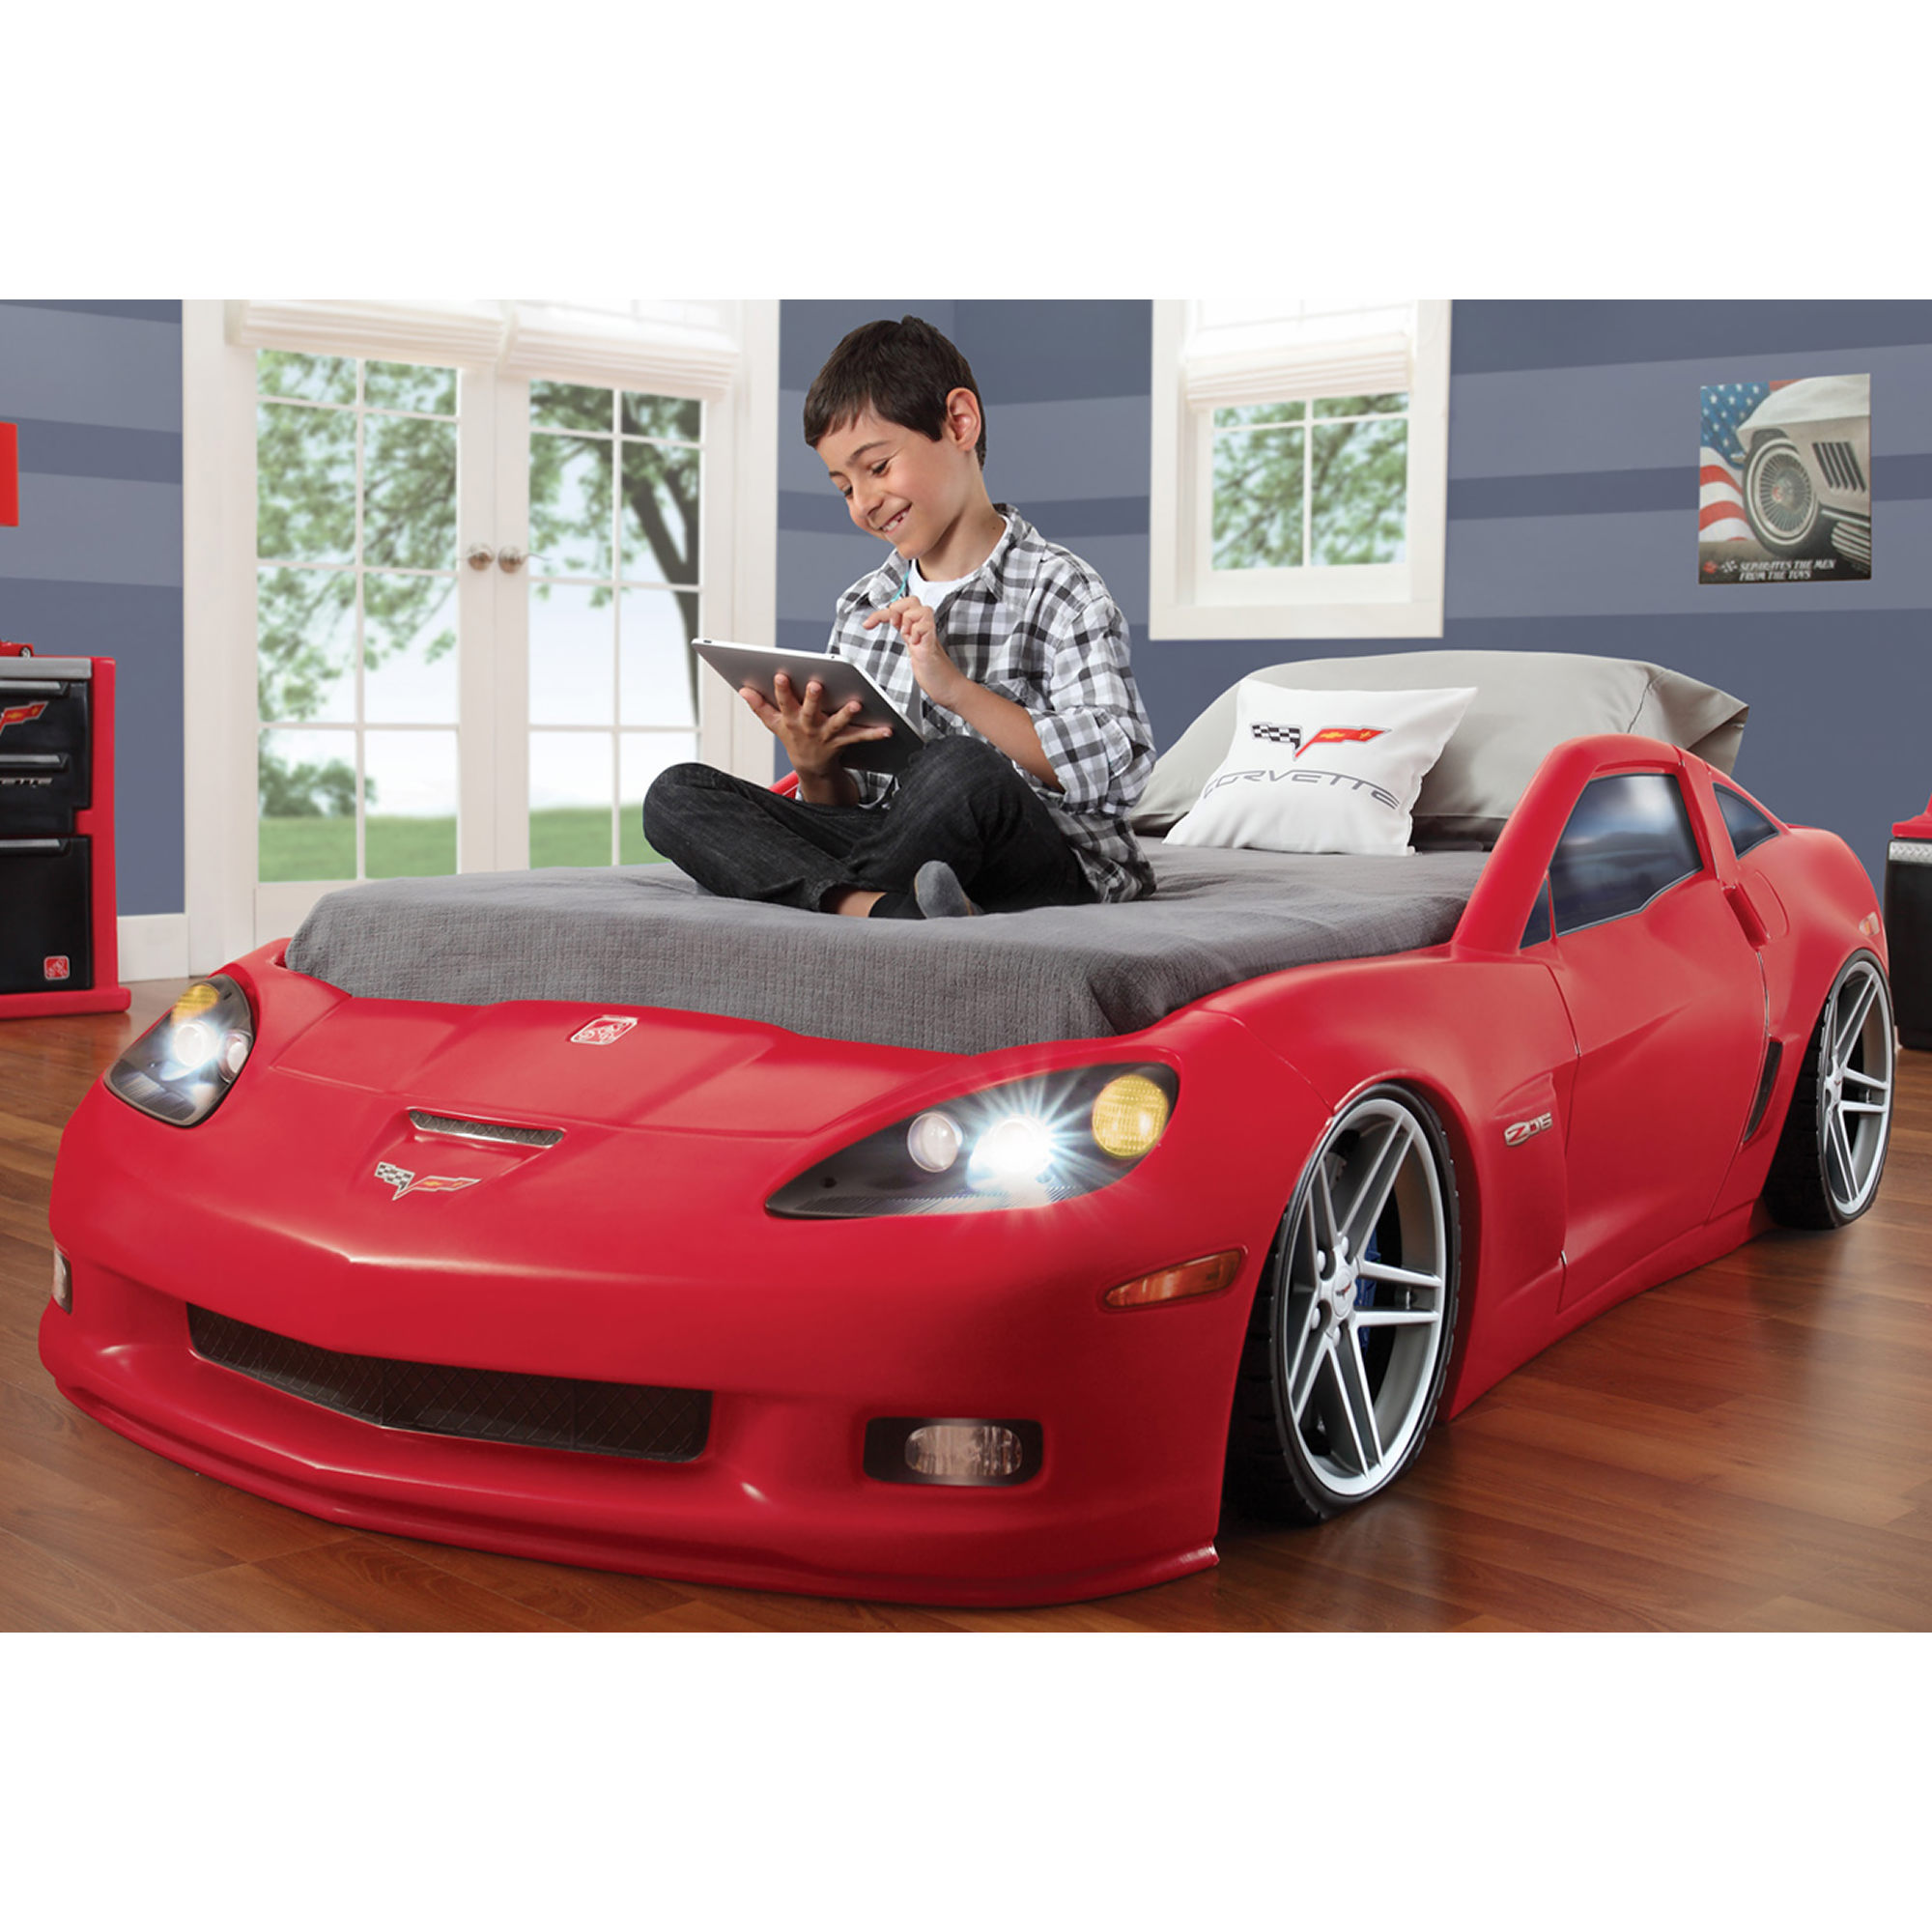 Corvette Toddler Bed